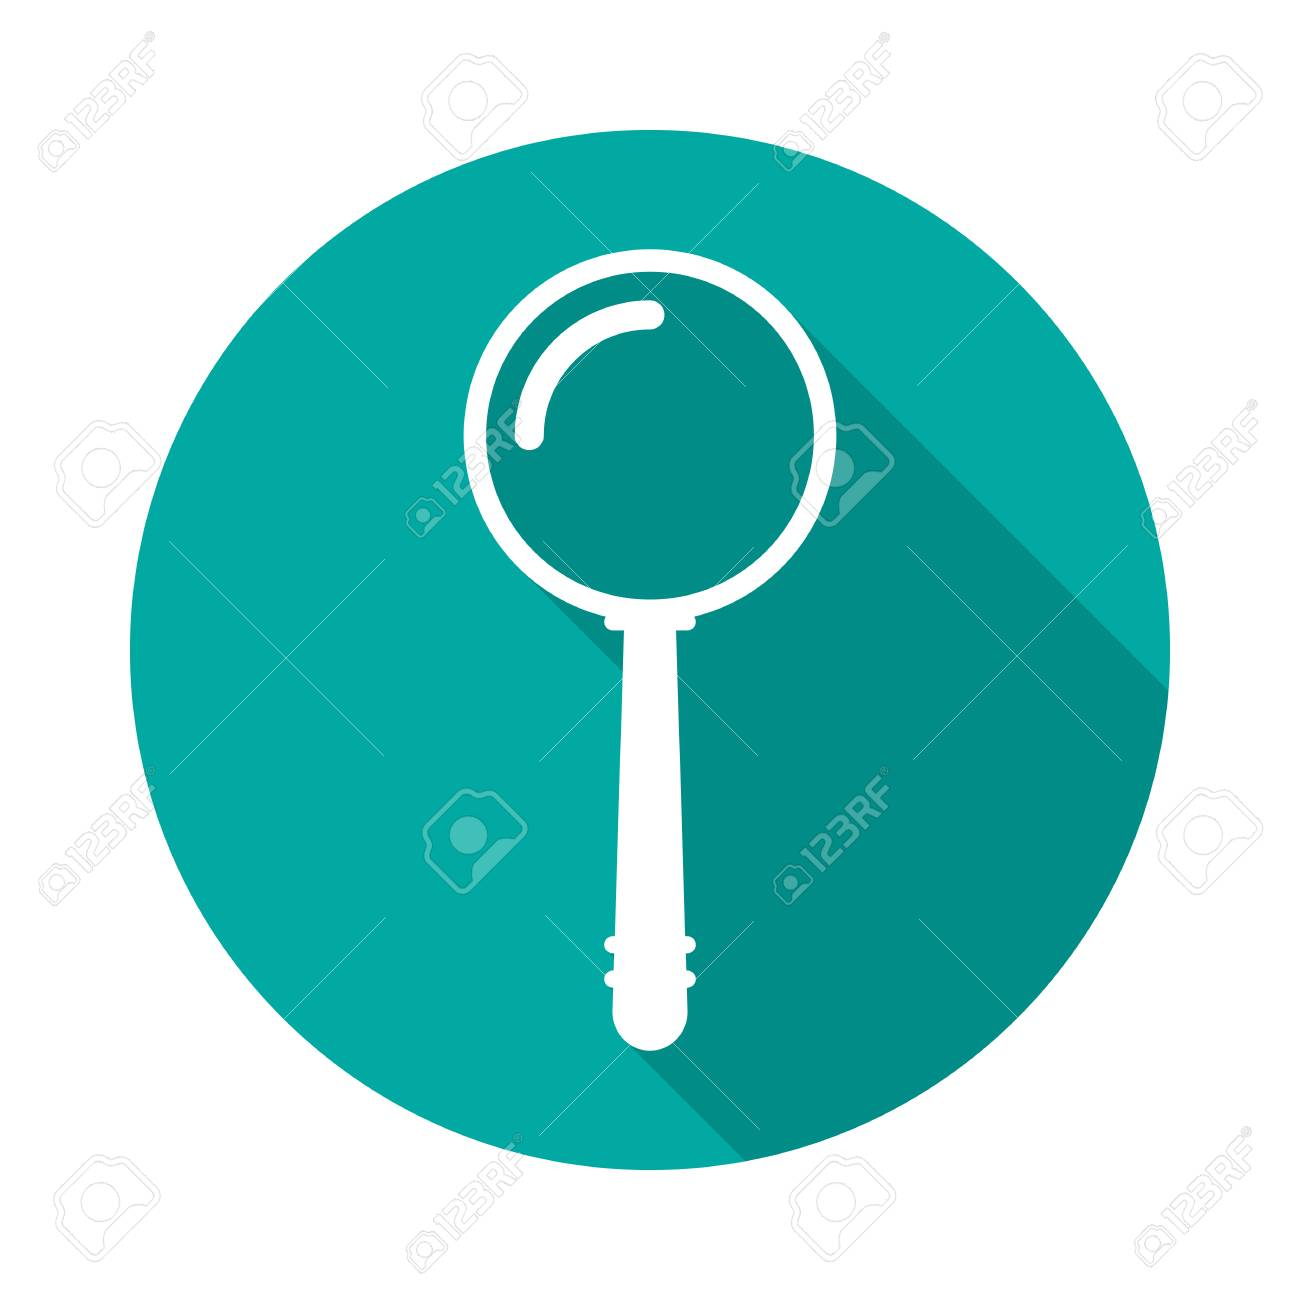 90448525-magnifier-round-icon-with-long-shadow-flat-design-style-magnifying-glass-simple-silhouette-modern-ci.jpg